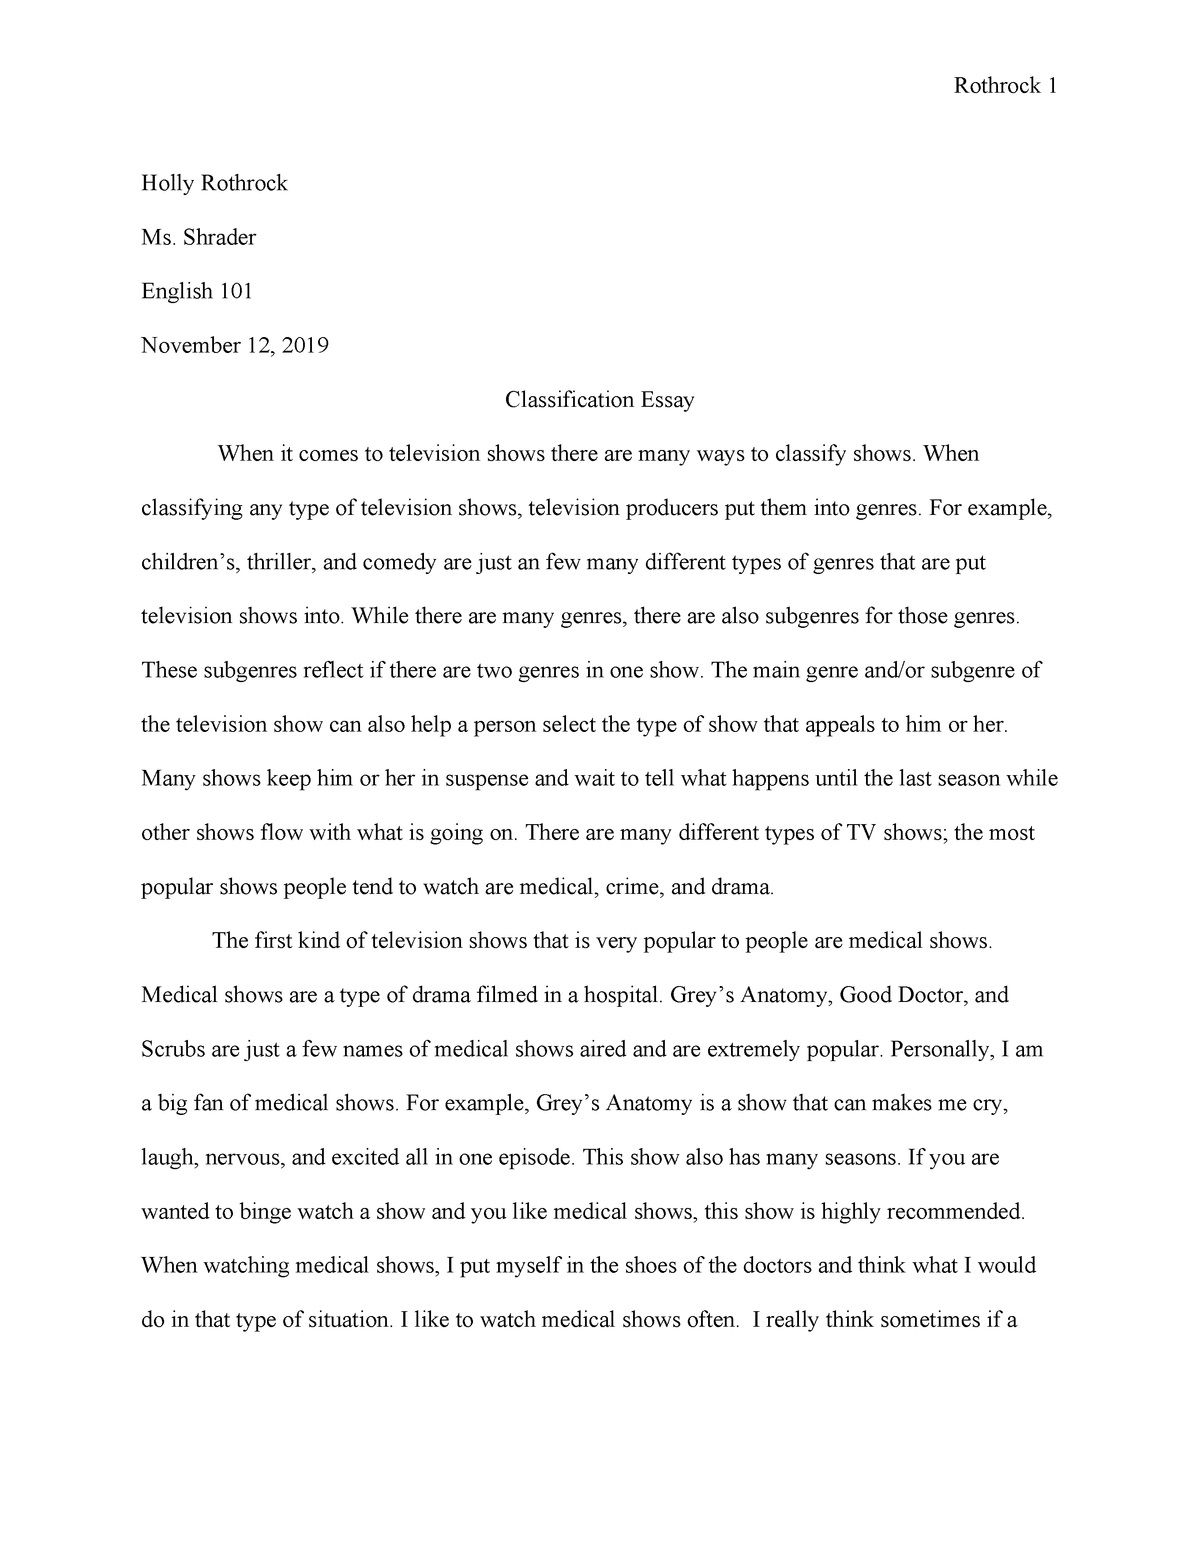 007 Awful Classification Essay Idea  About Type Of Food Topic ExampleFull